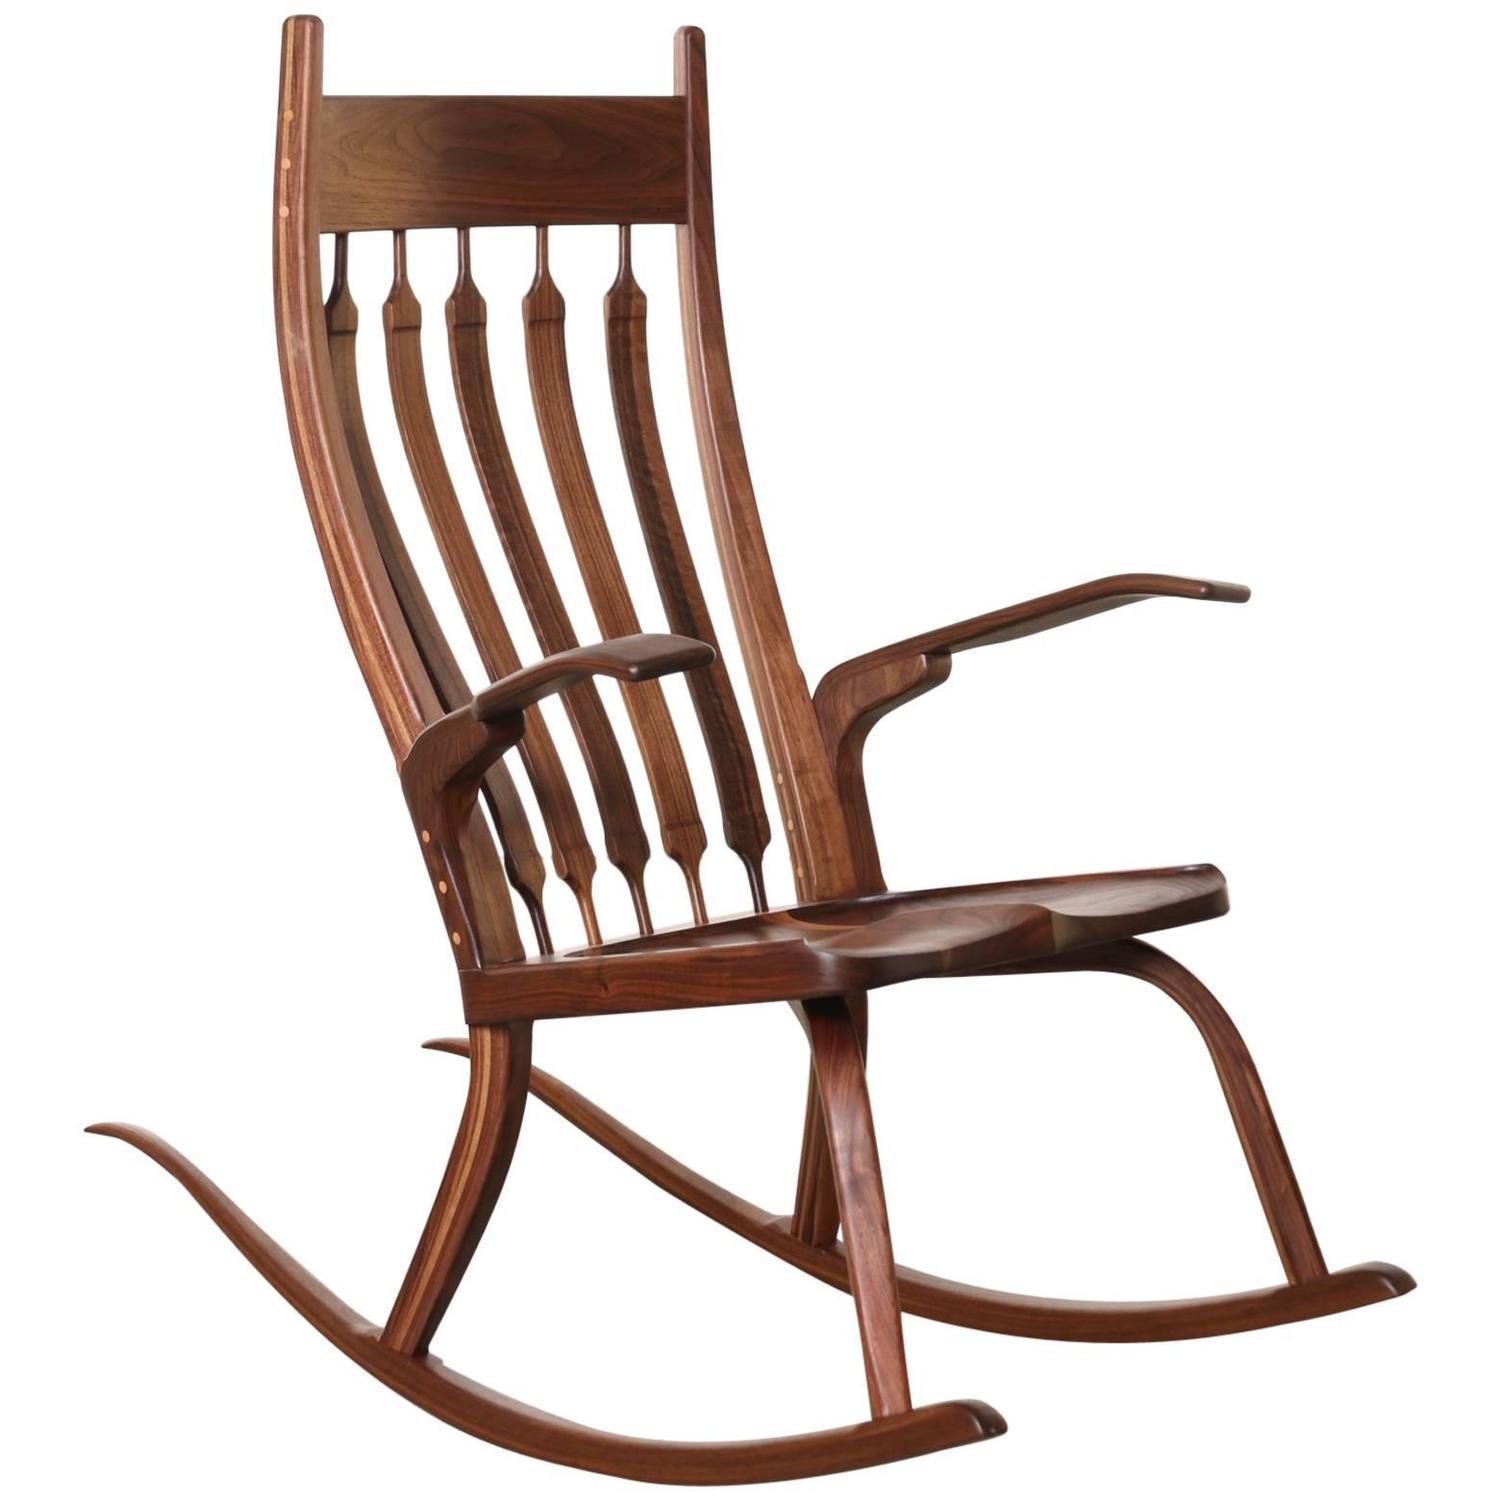 ... Craftsman Wooden Rocking Chair, Dark Walnut For Sale at 1stdibs